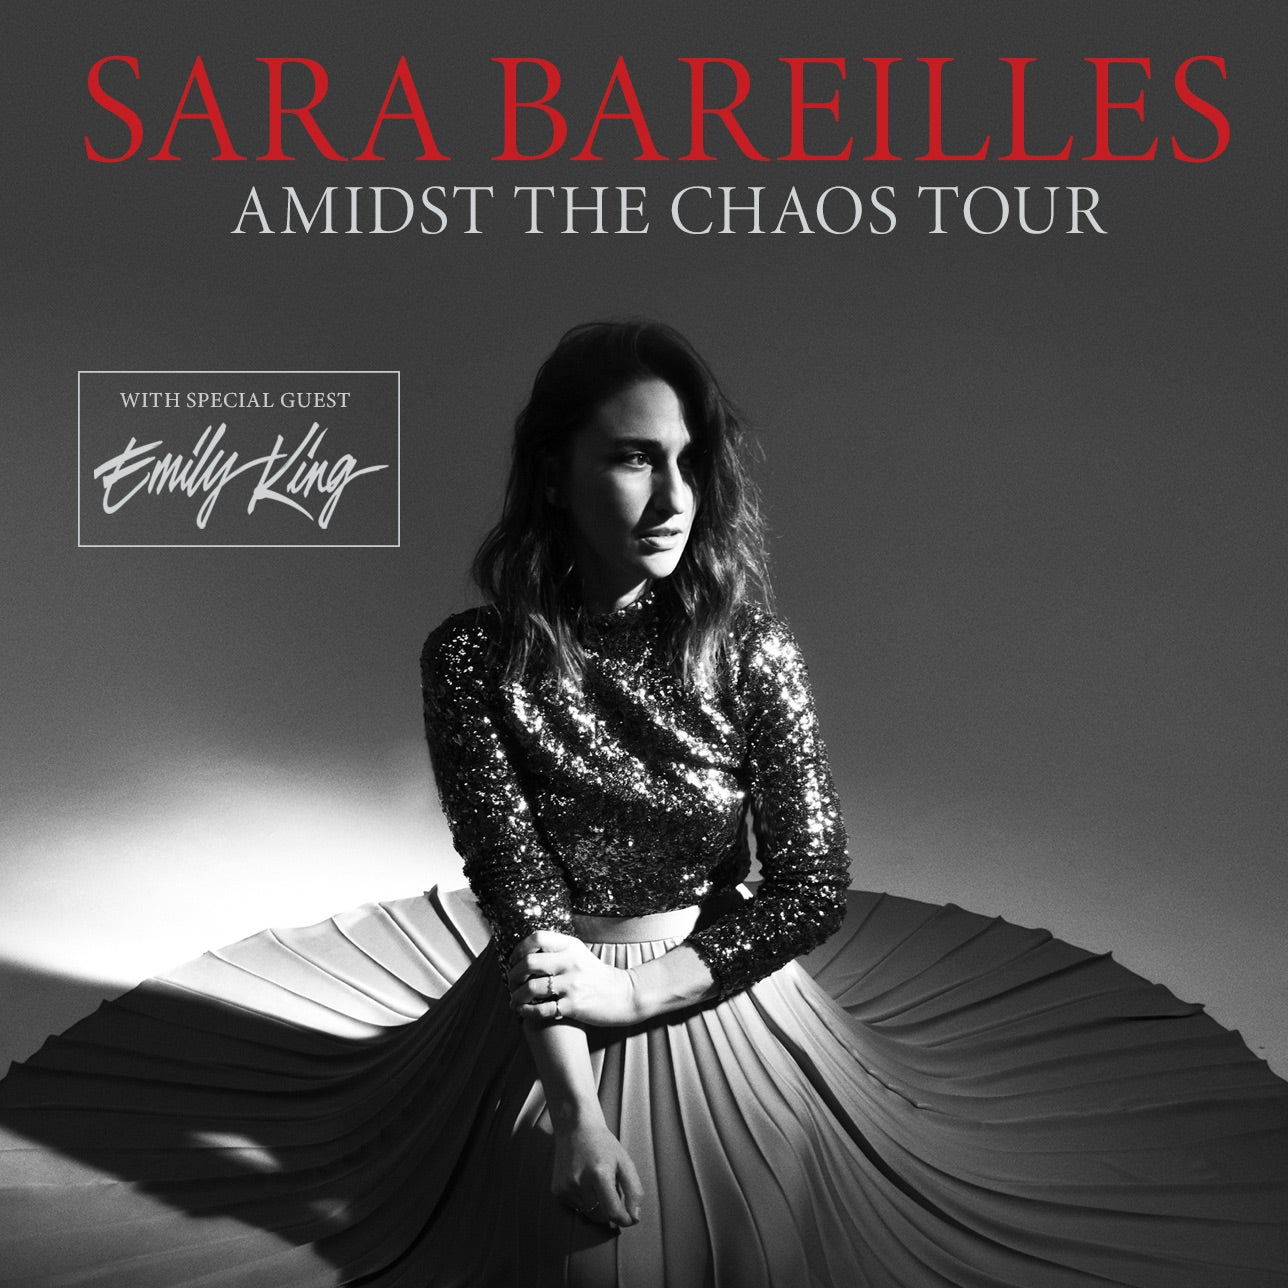 Win Tickets to Sarah Bareilles from I-94!